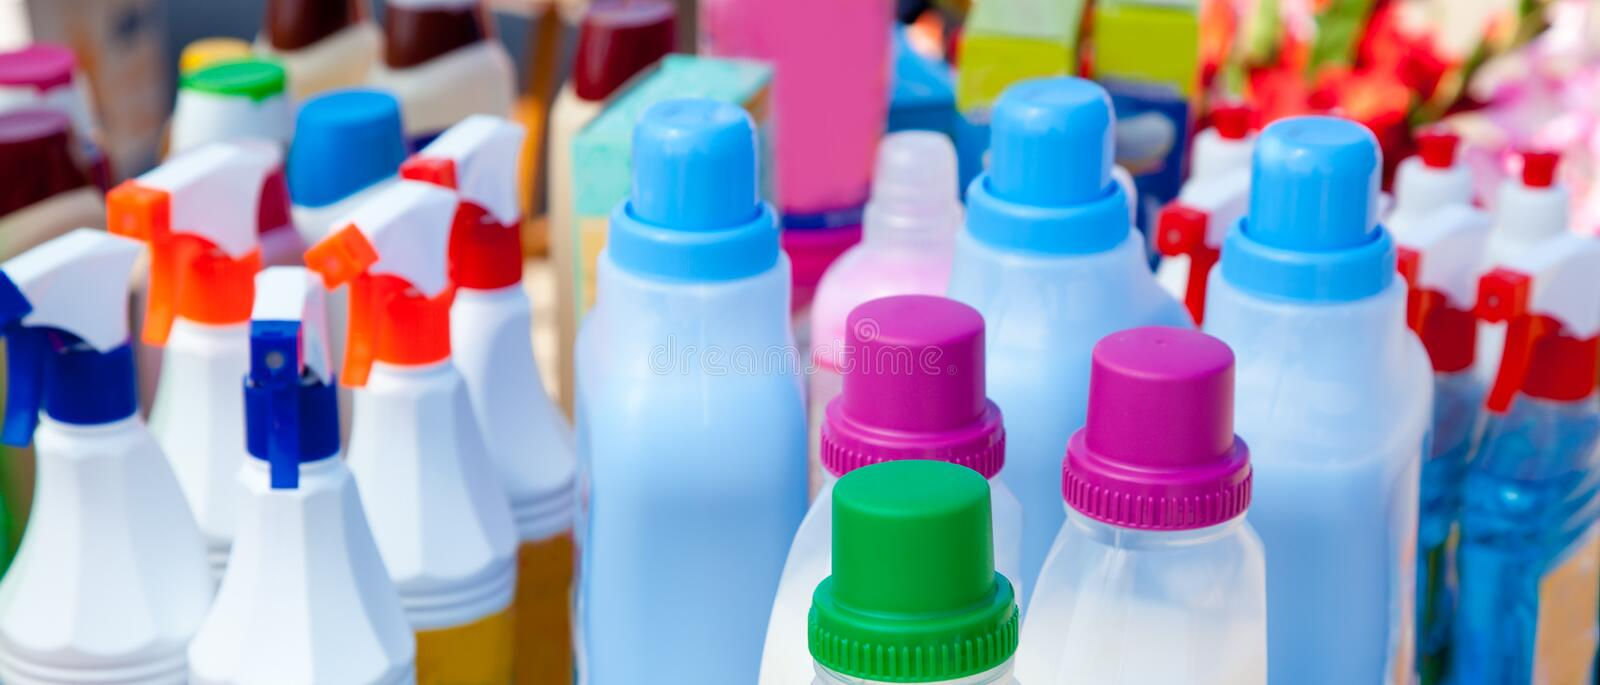 Chemical products for cleaning chores. Domestic chemical products for cleaning house chores stock photography